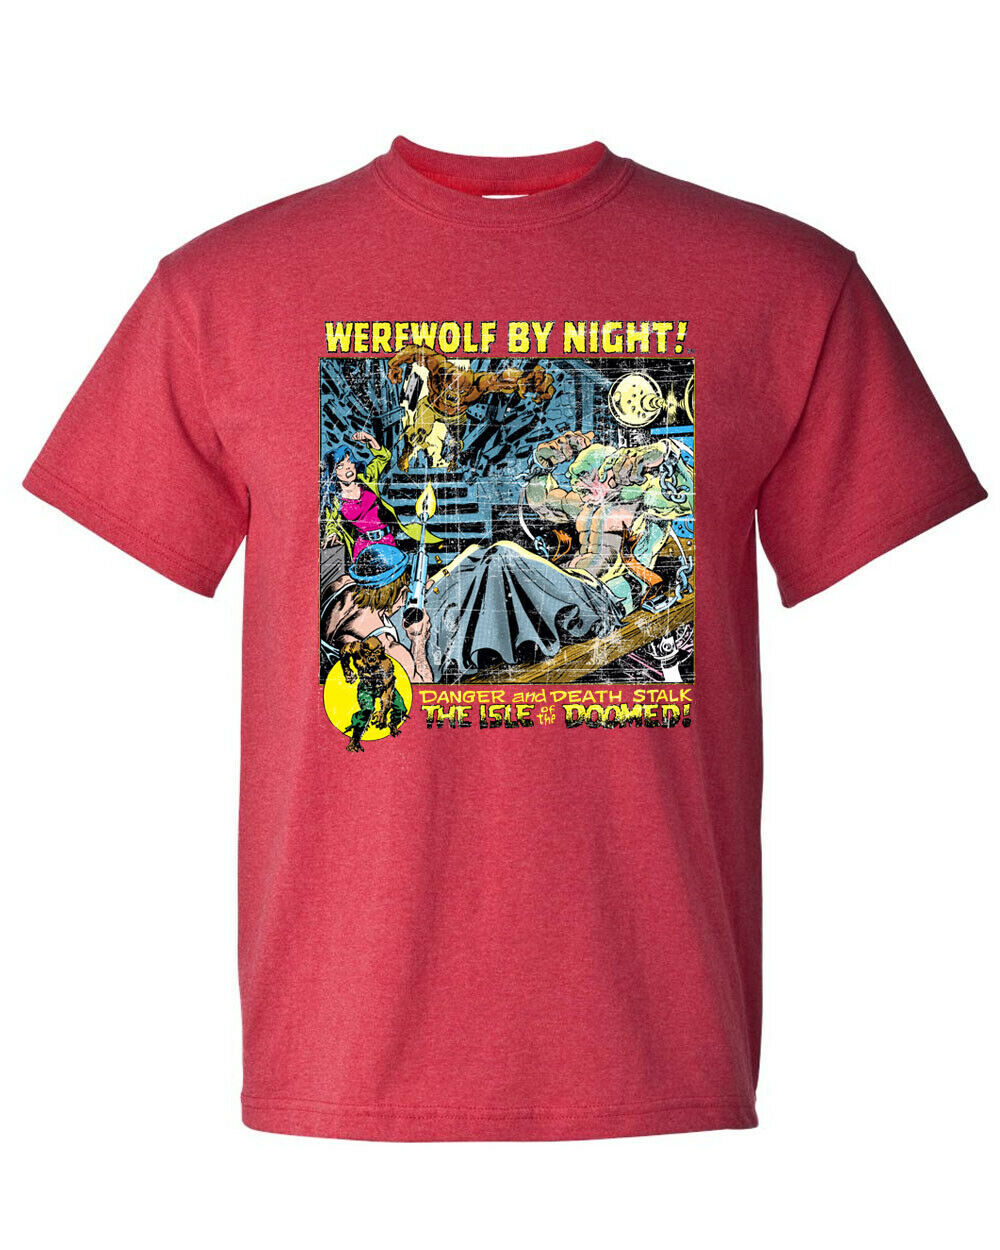 Werewolf by Night T Shirt Legion of Monsters Vintage 1970s Marvel Comics red tee